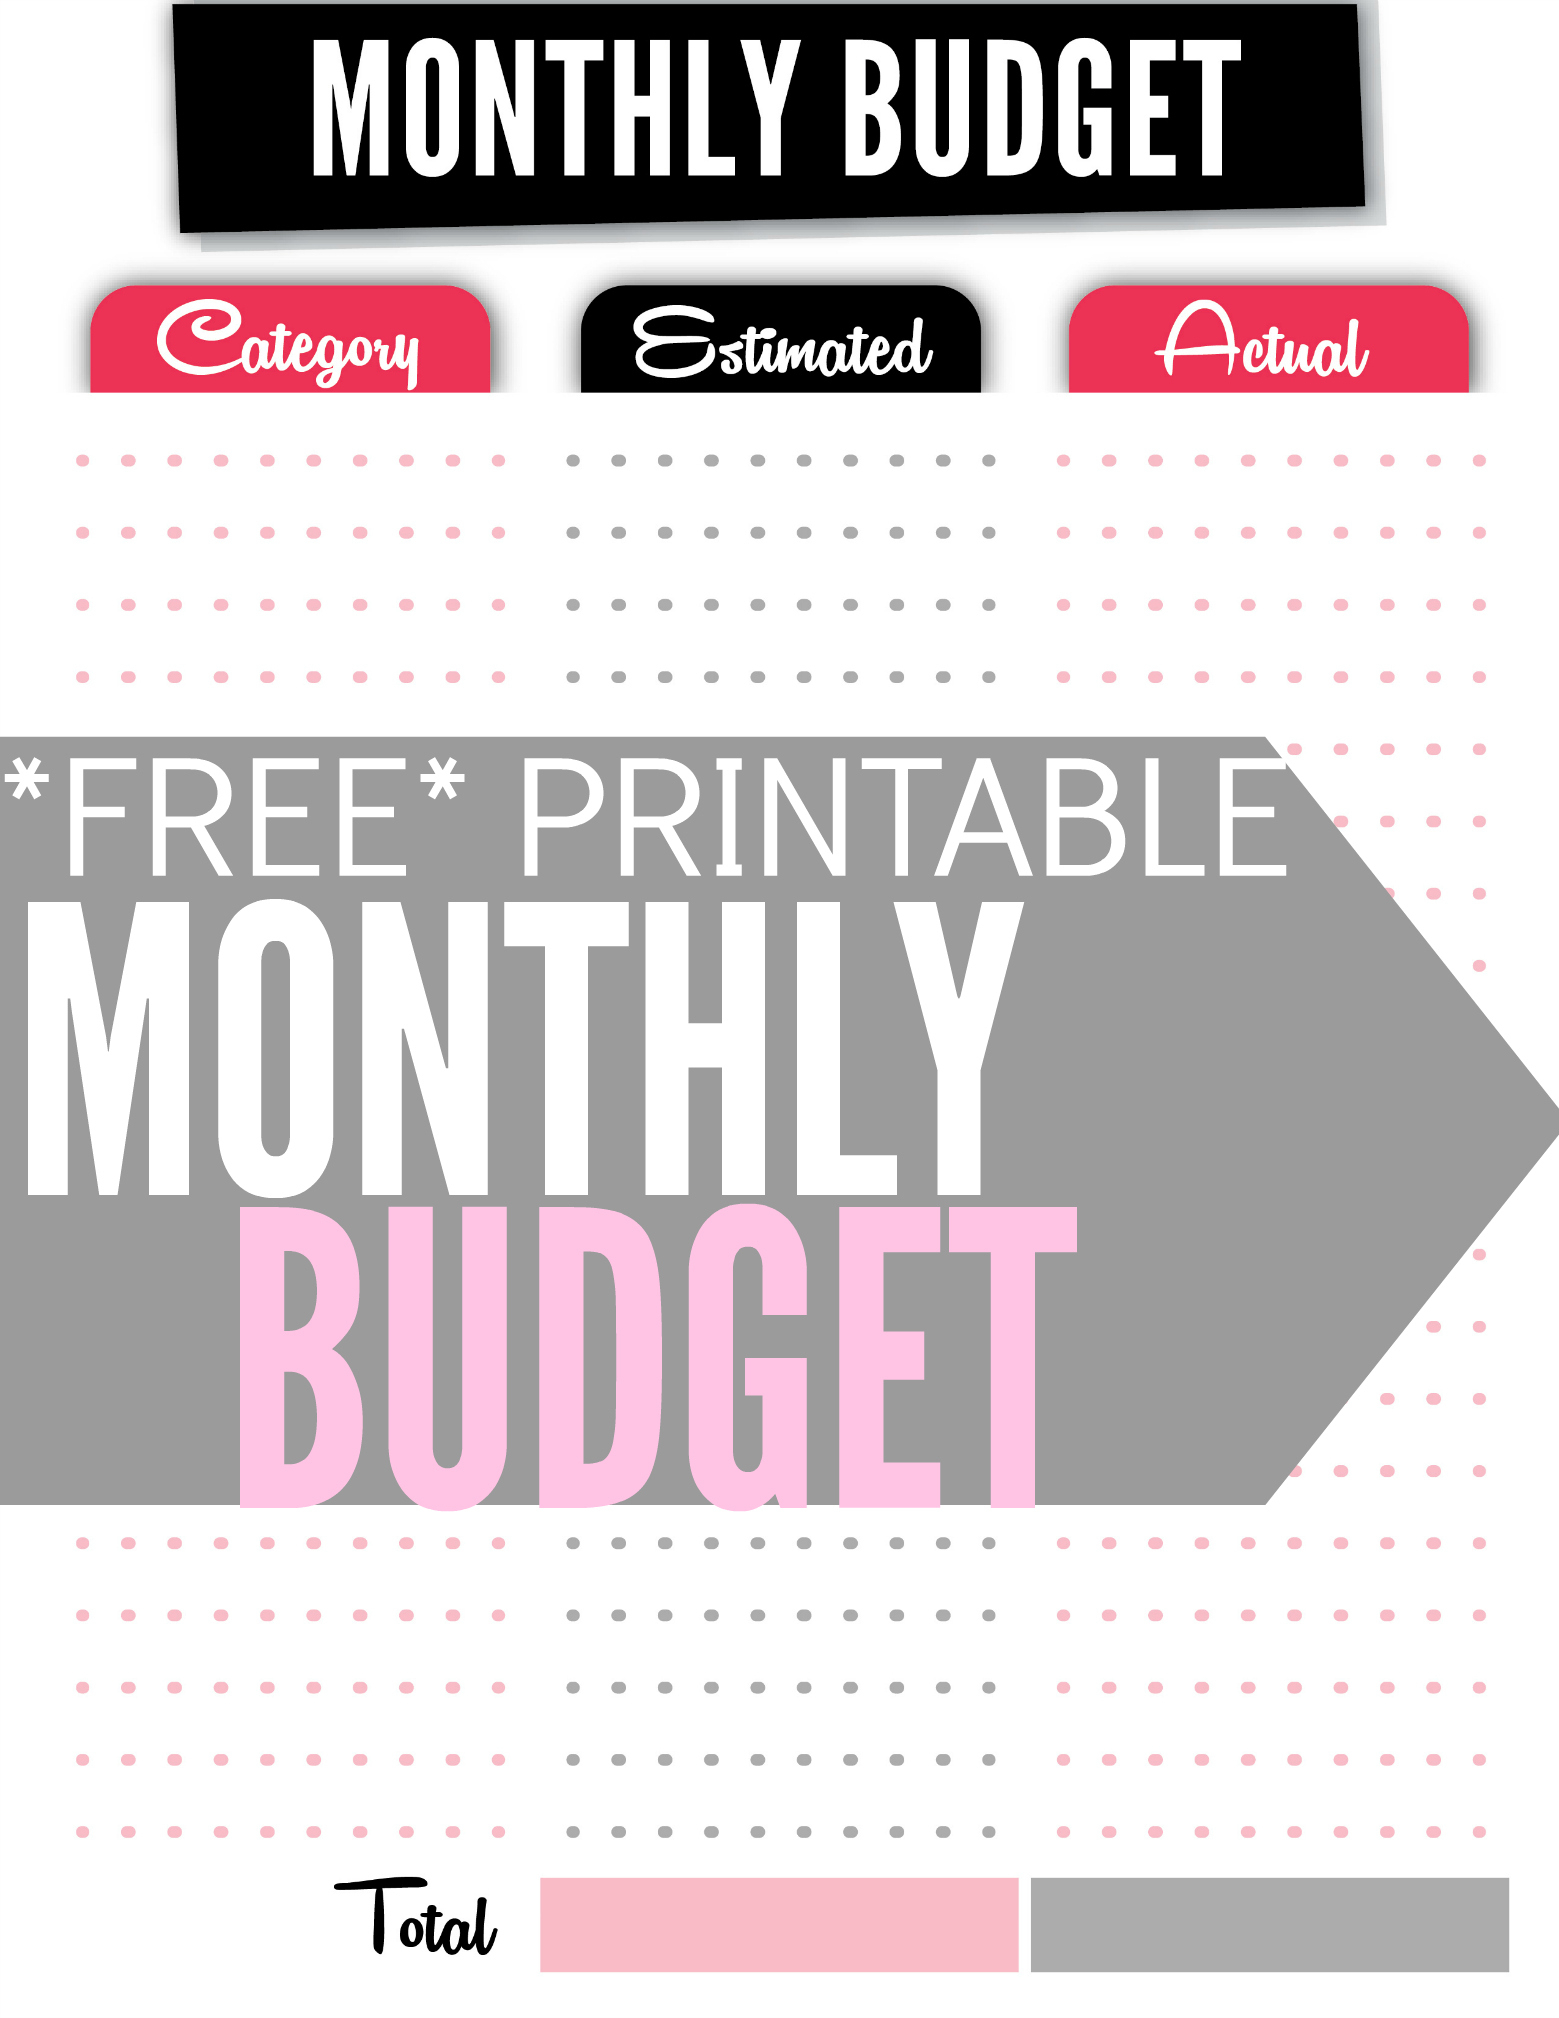 Monthly Budget Spreadsheet Google Docs With How To Create Budget Spreadsheet In Excel Make For An Event Personal